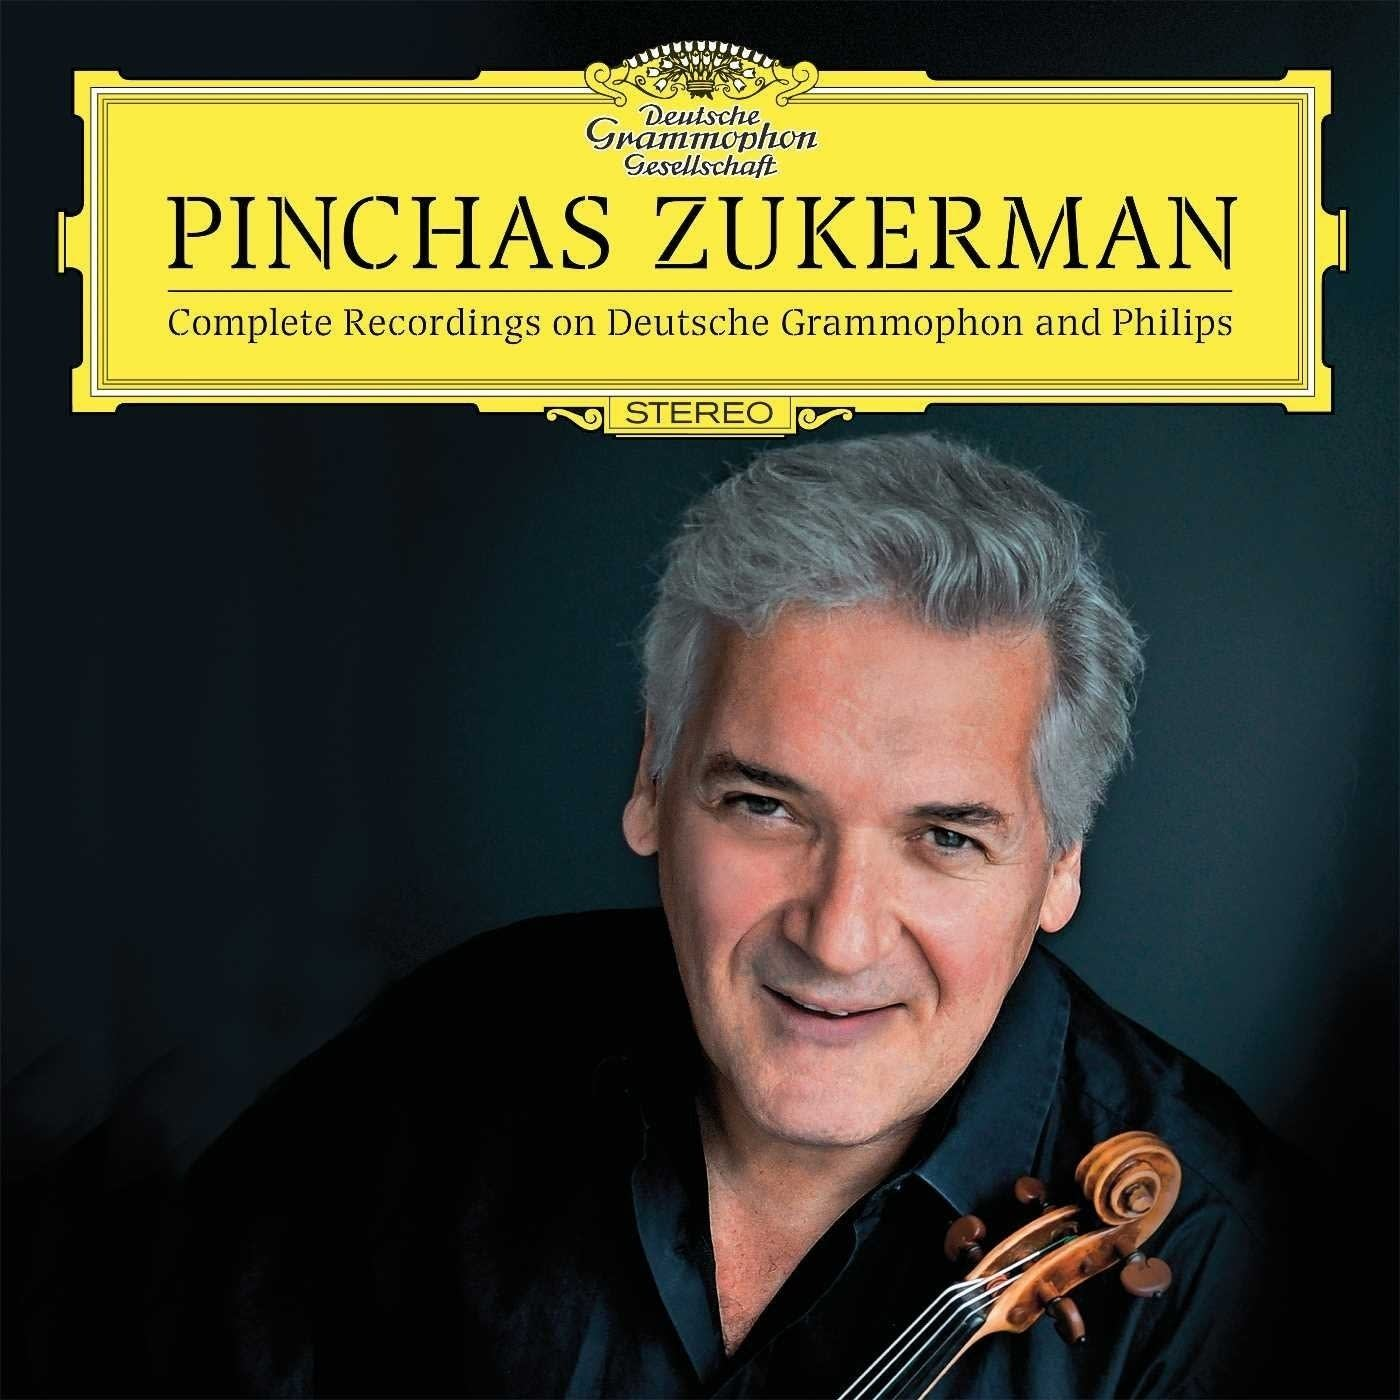 Pinchas Zukerman - complete box set